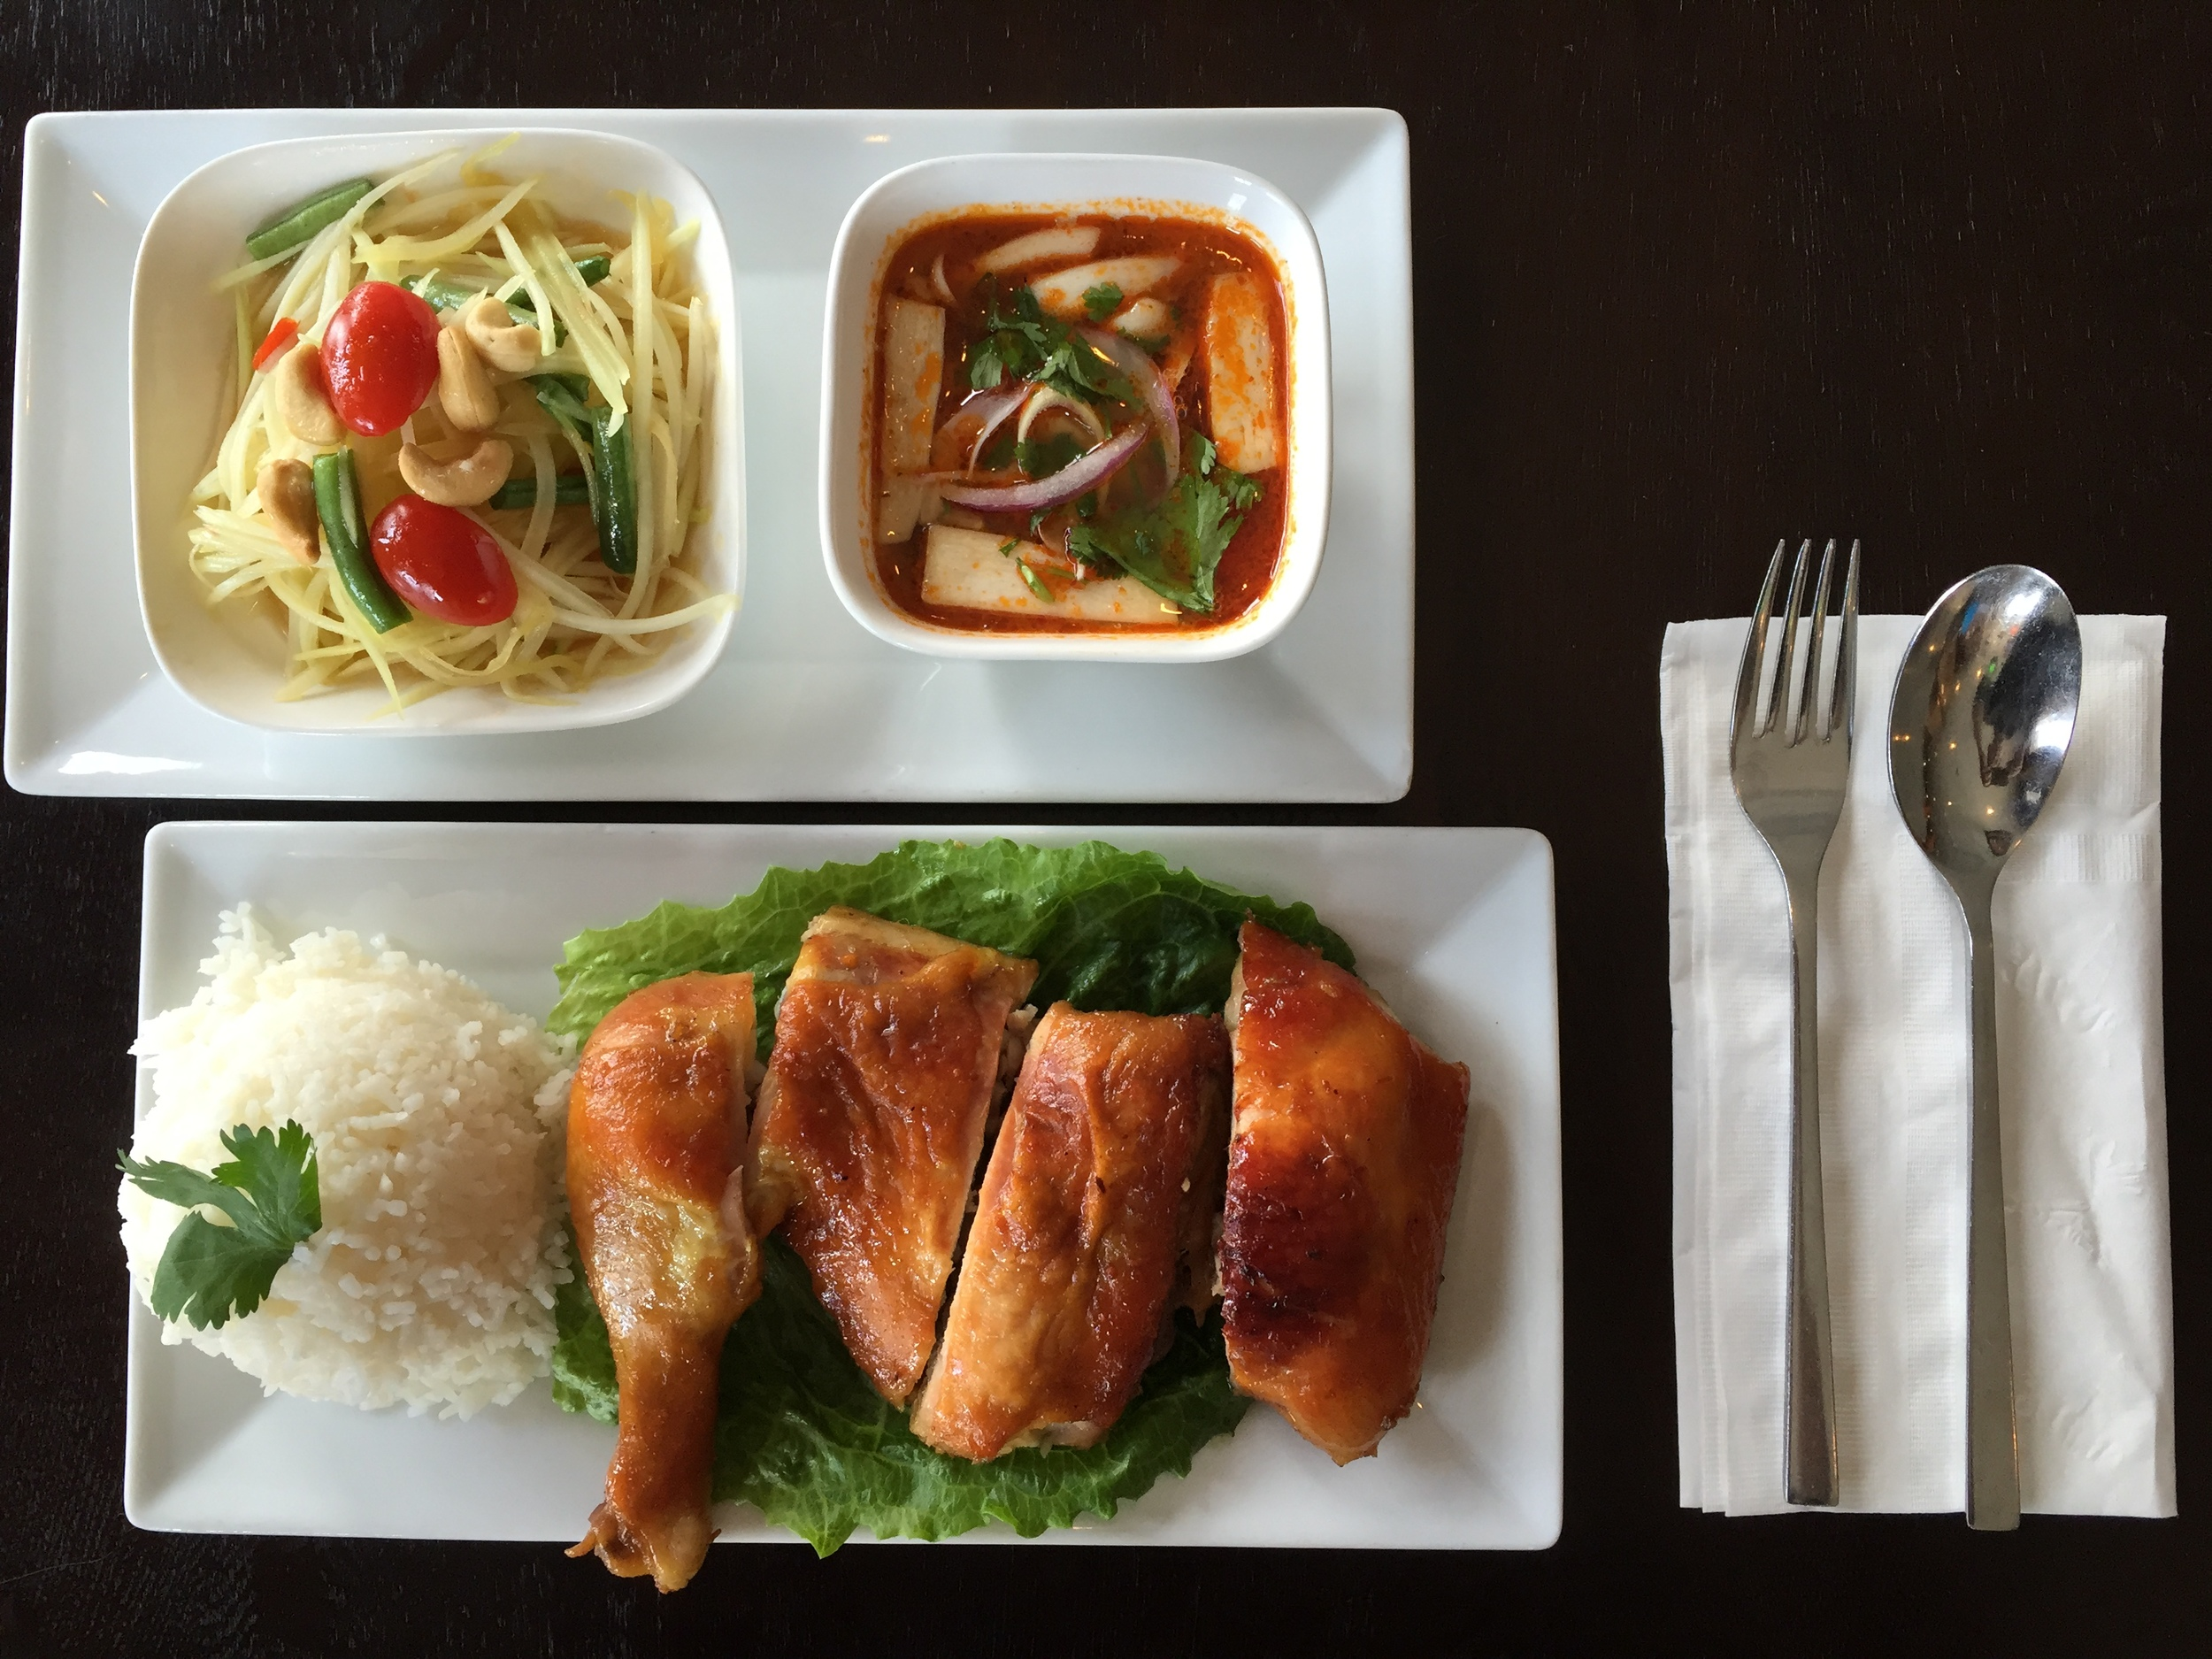 Green Papaya Salad and Shrimp Lemongrass Soup as Appetizers, along with very flavorful Thai BBQ Chicken and Jasmine rice. All together for $10.